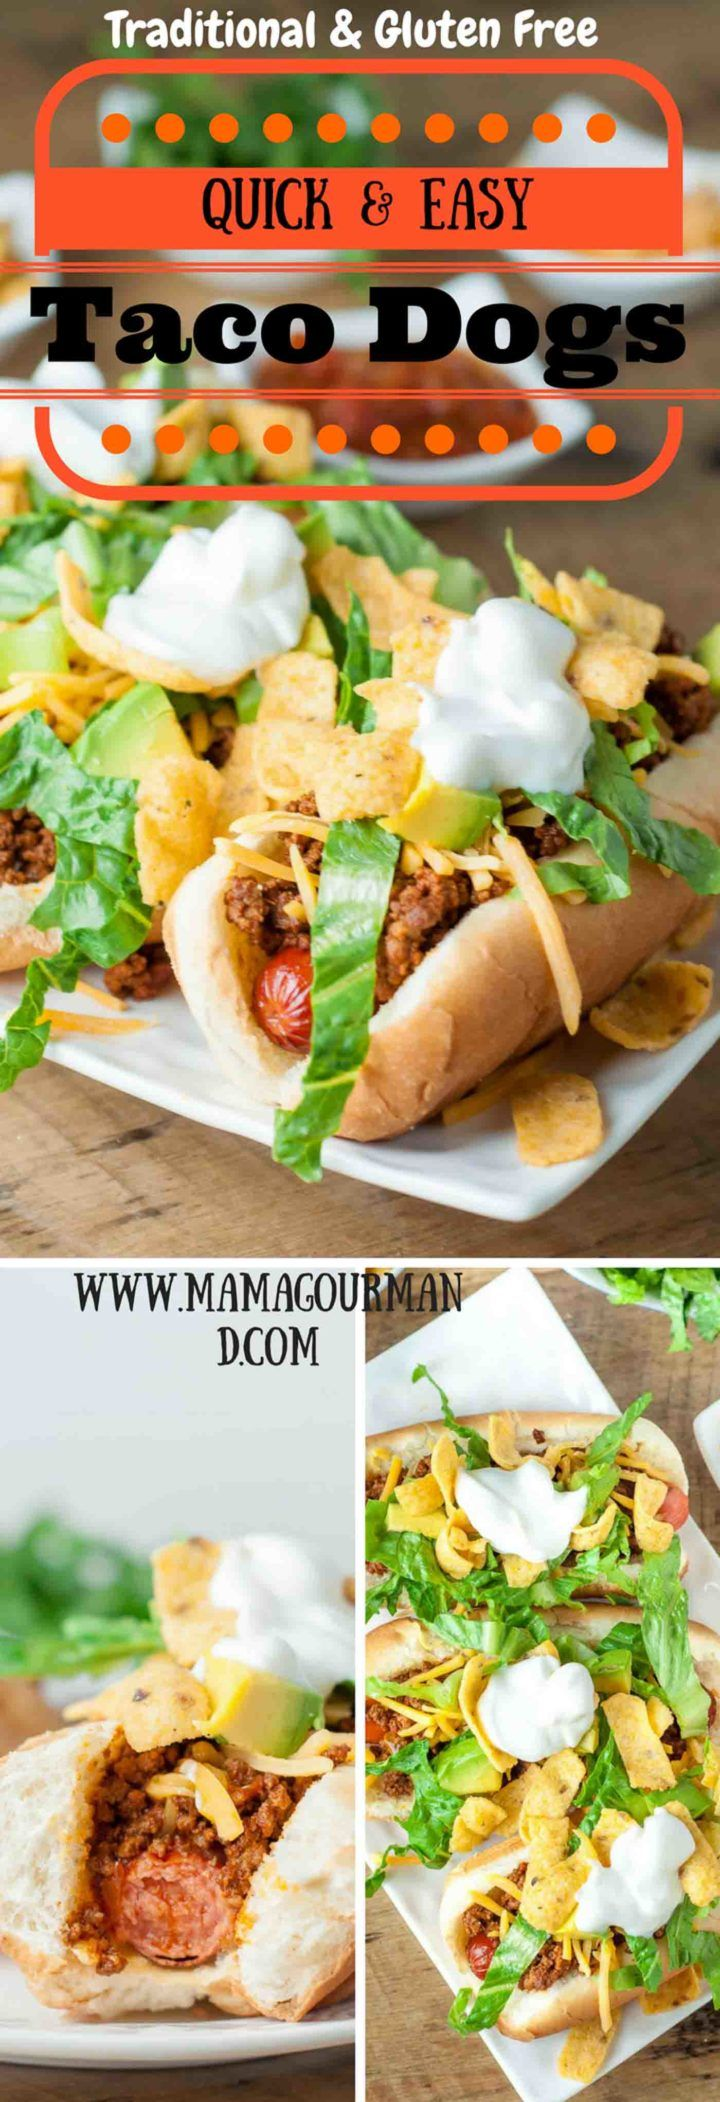 These Quick and Easy Taco Dogs only have a few ingredients and are so simple to throw together. With how easy they are to make, it's hard to believe how out-of-this-world amazing they are! http://www.mamagourmand.com